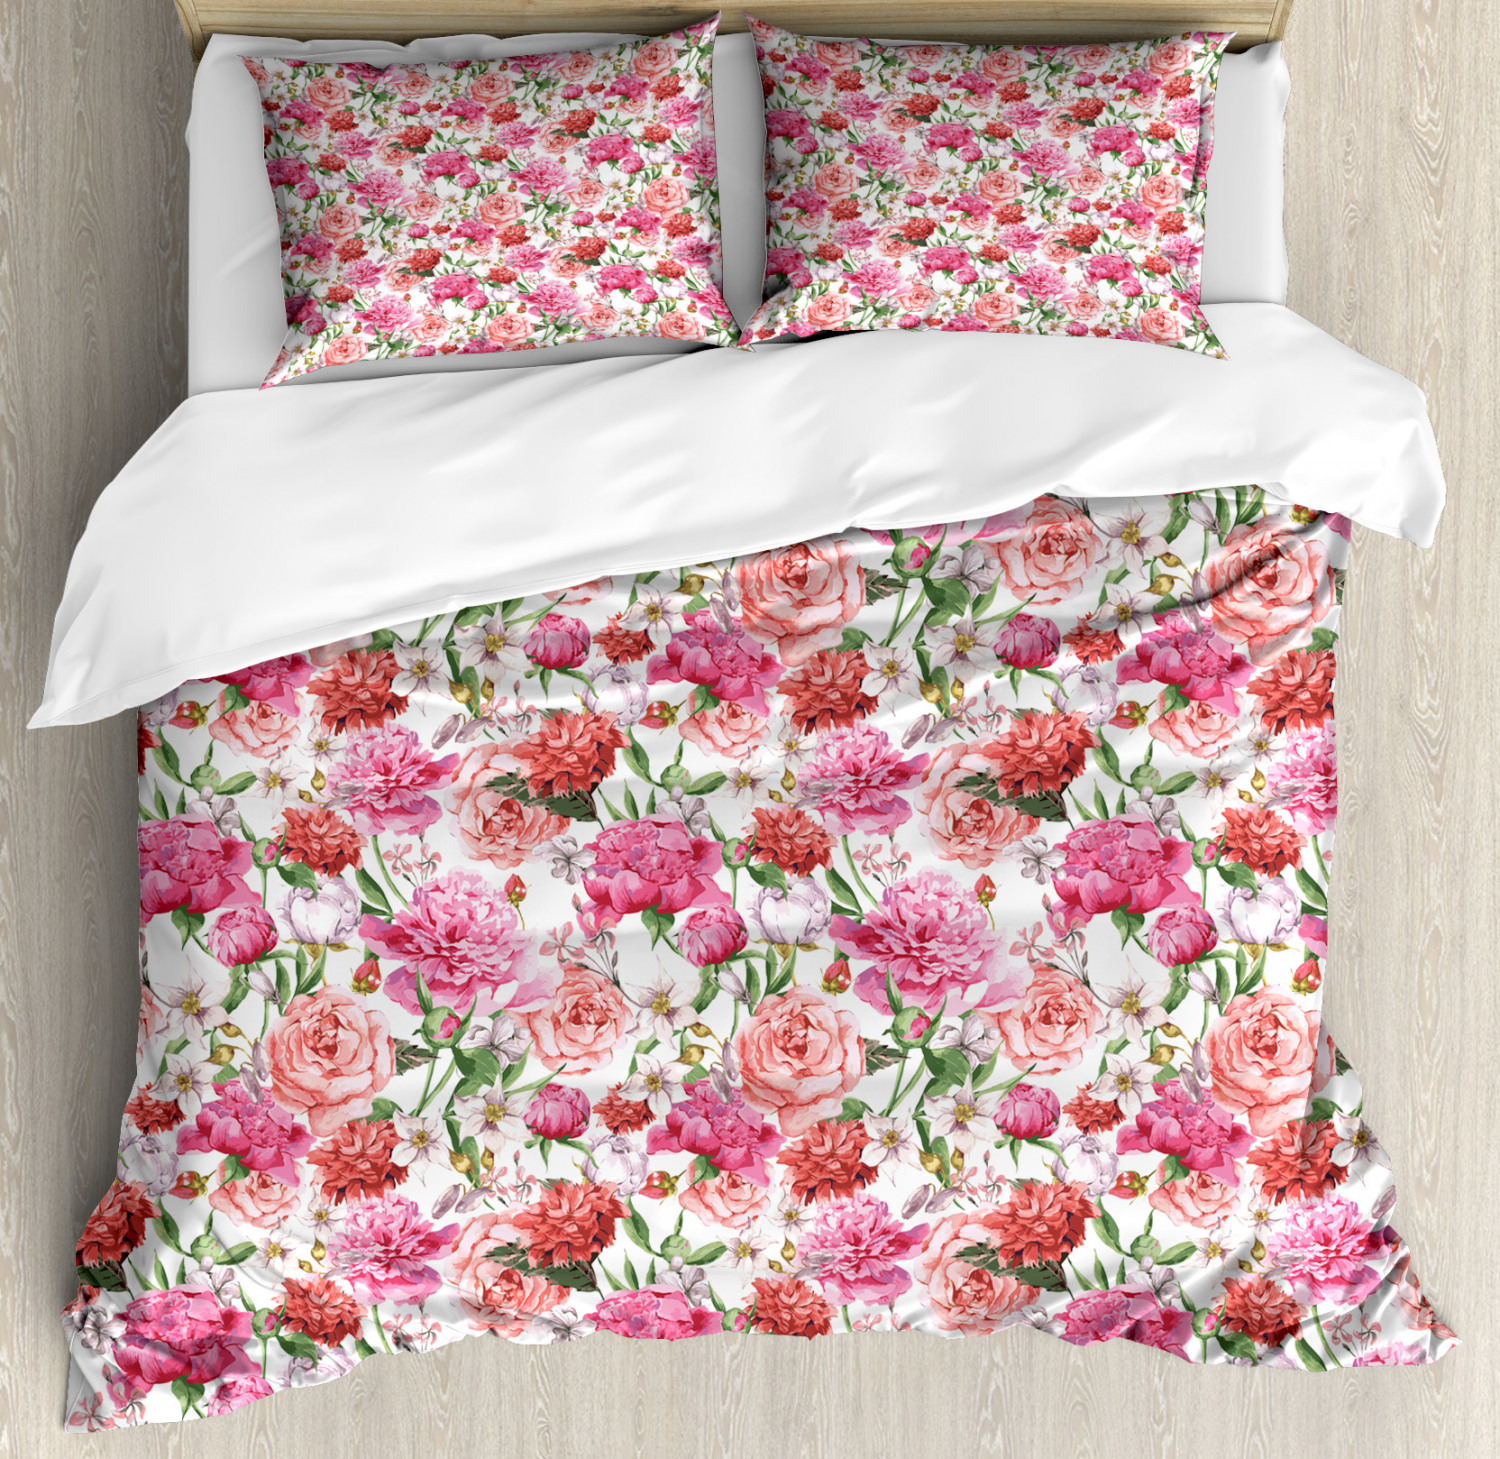 shabby chic duvet cover set summer spring garden flowers with leaves and buds artwork decorative bedding set with pillow shams orange hot pink and